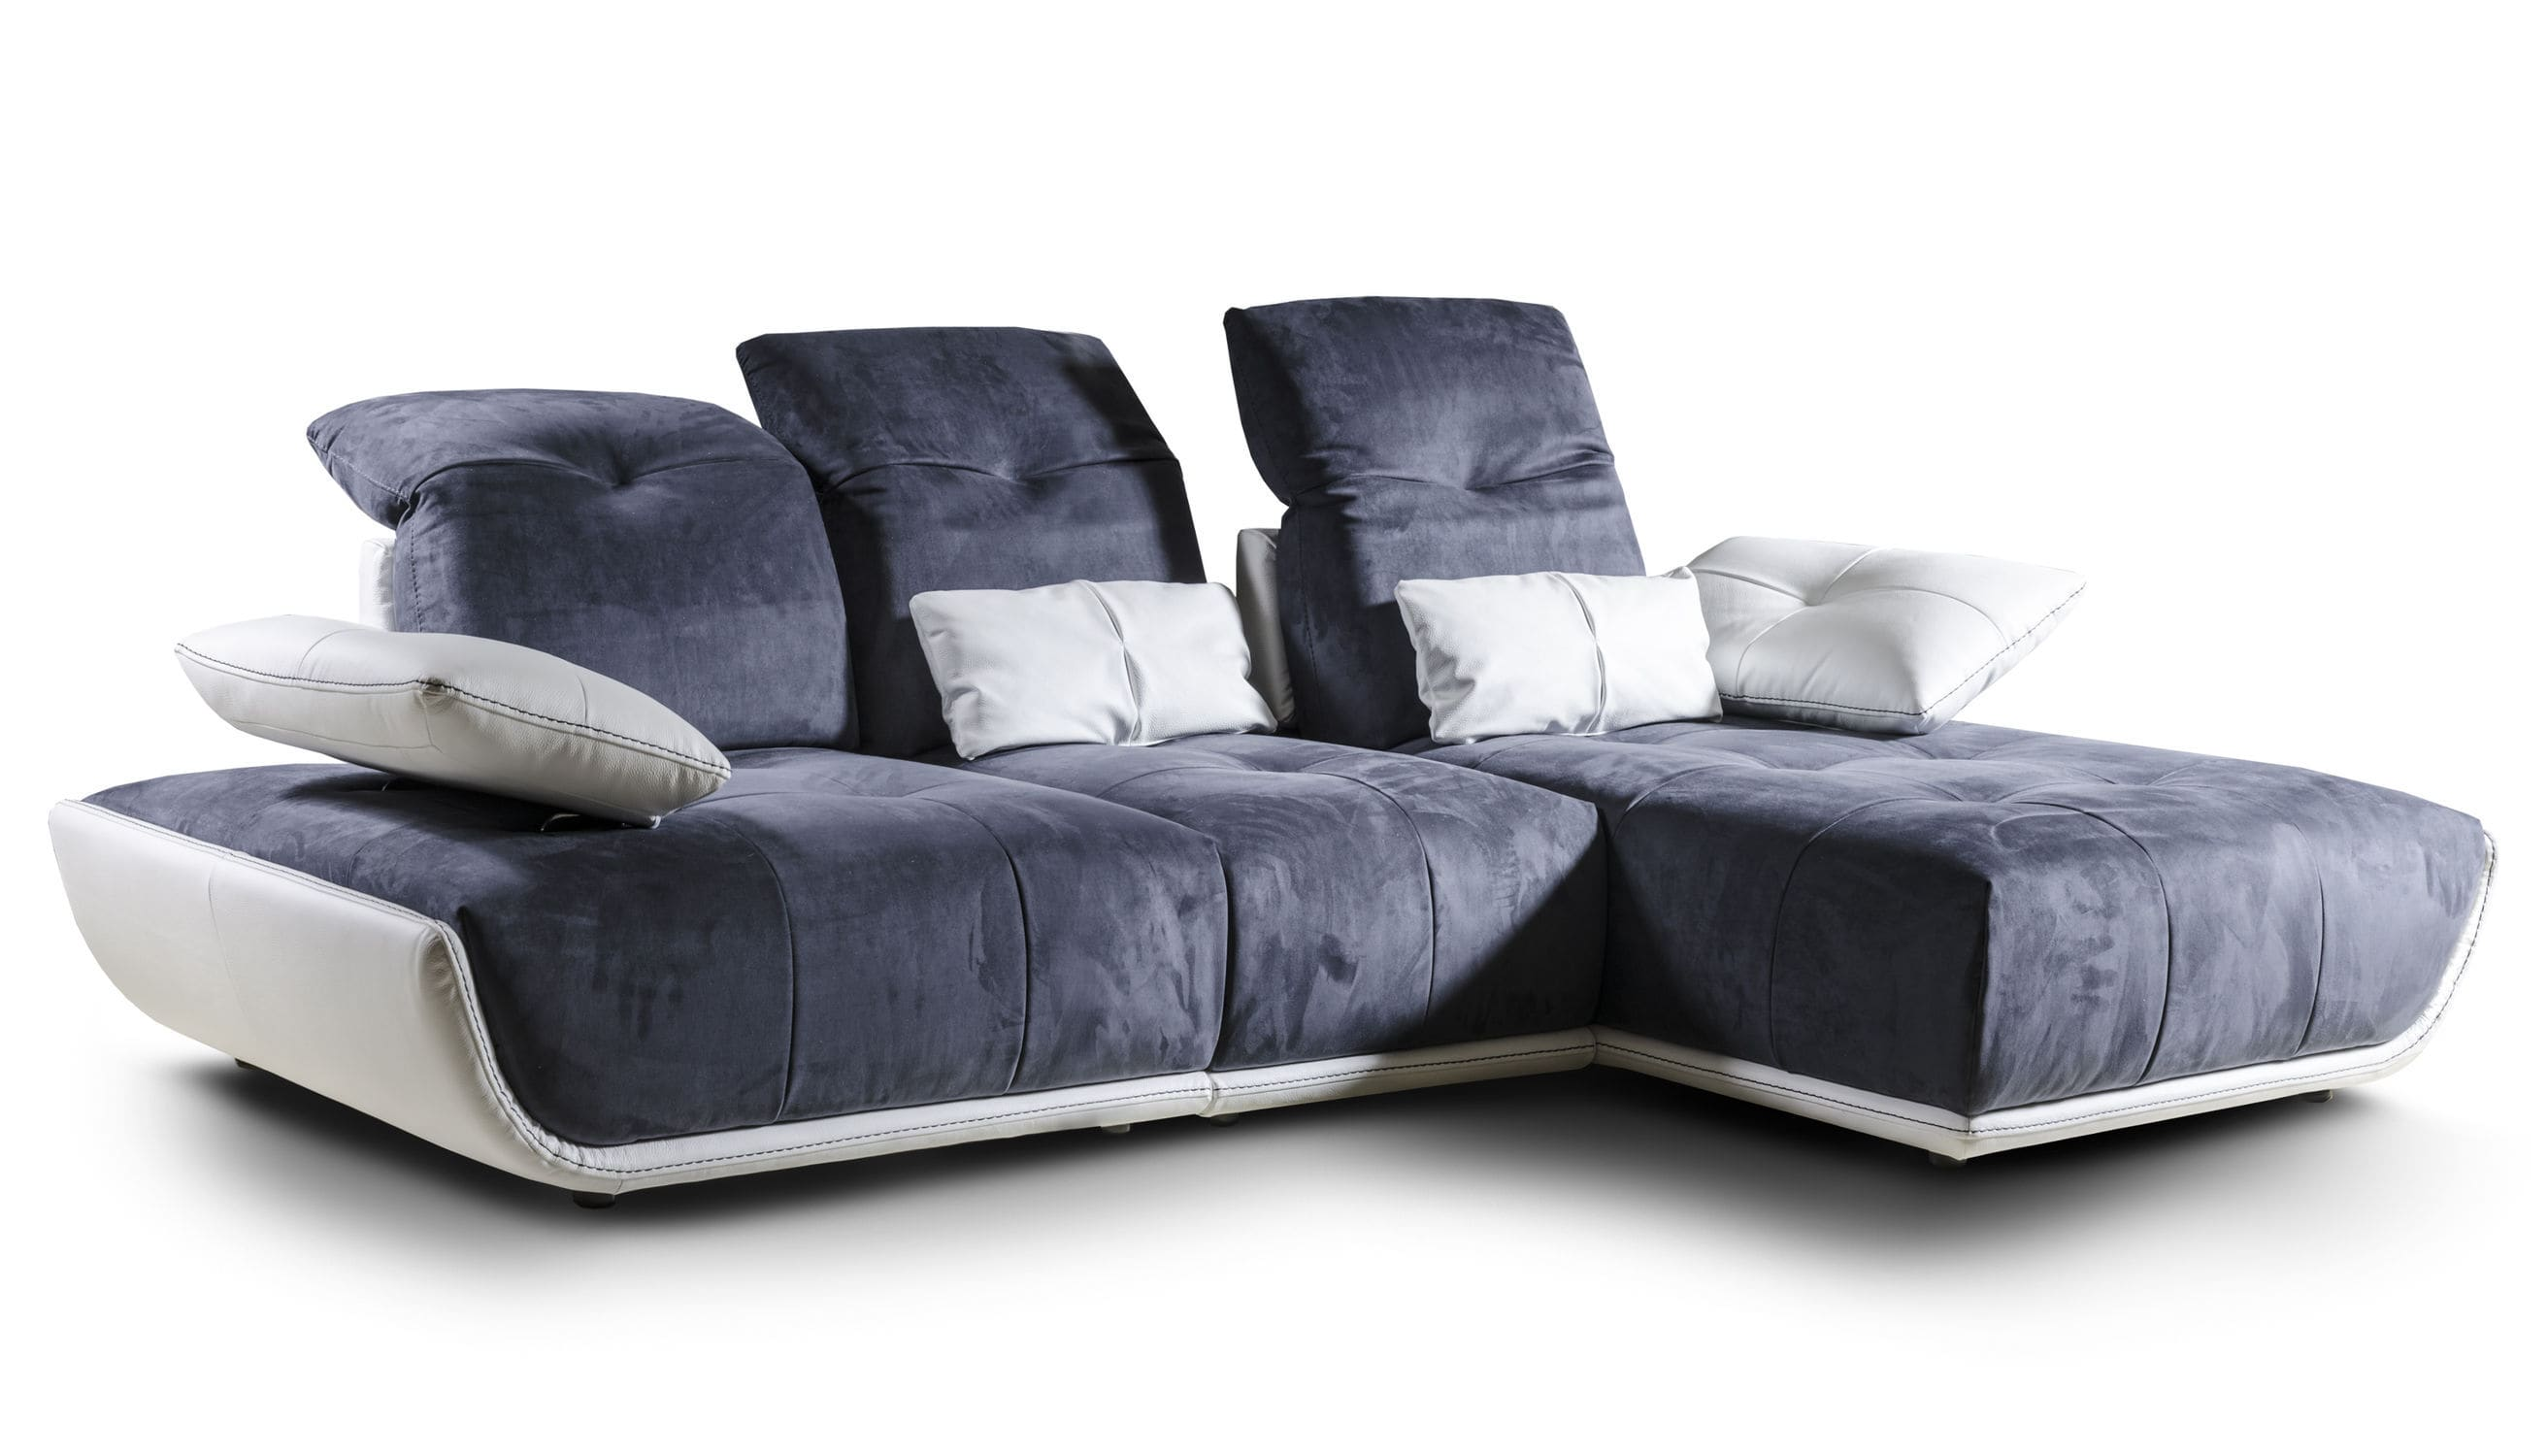 modular sofa leather fabric cassandra nieri